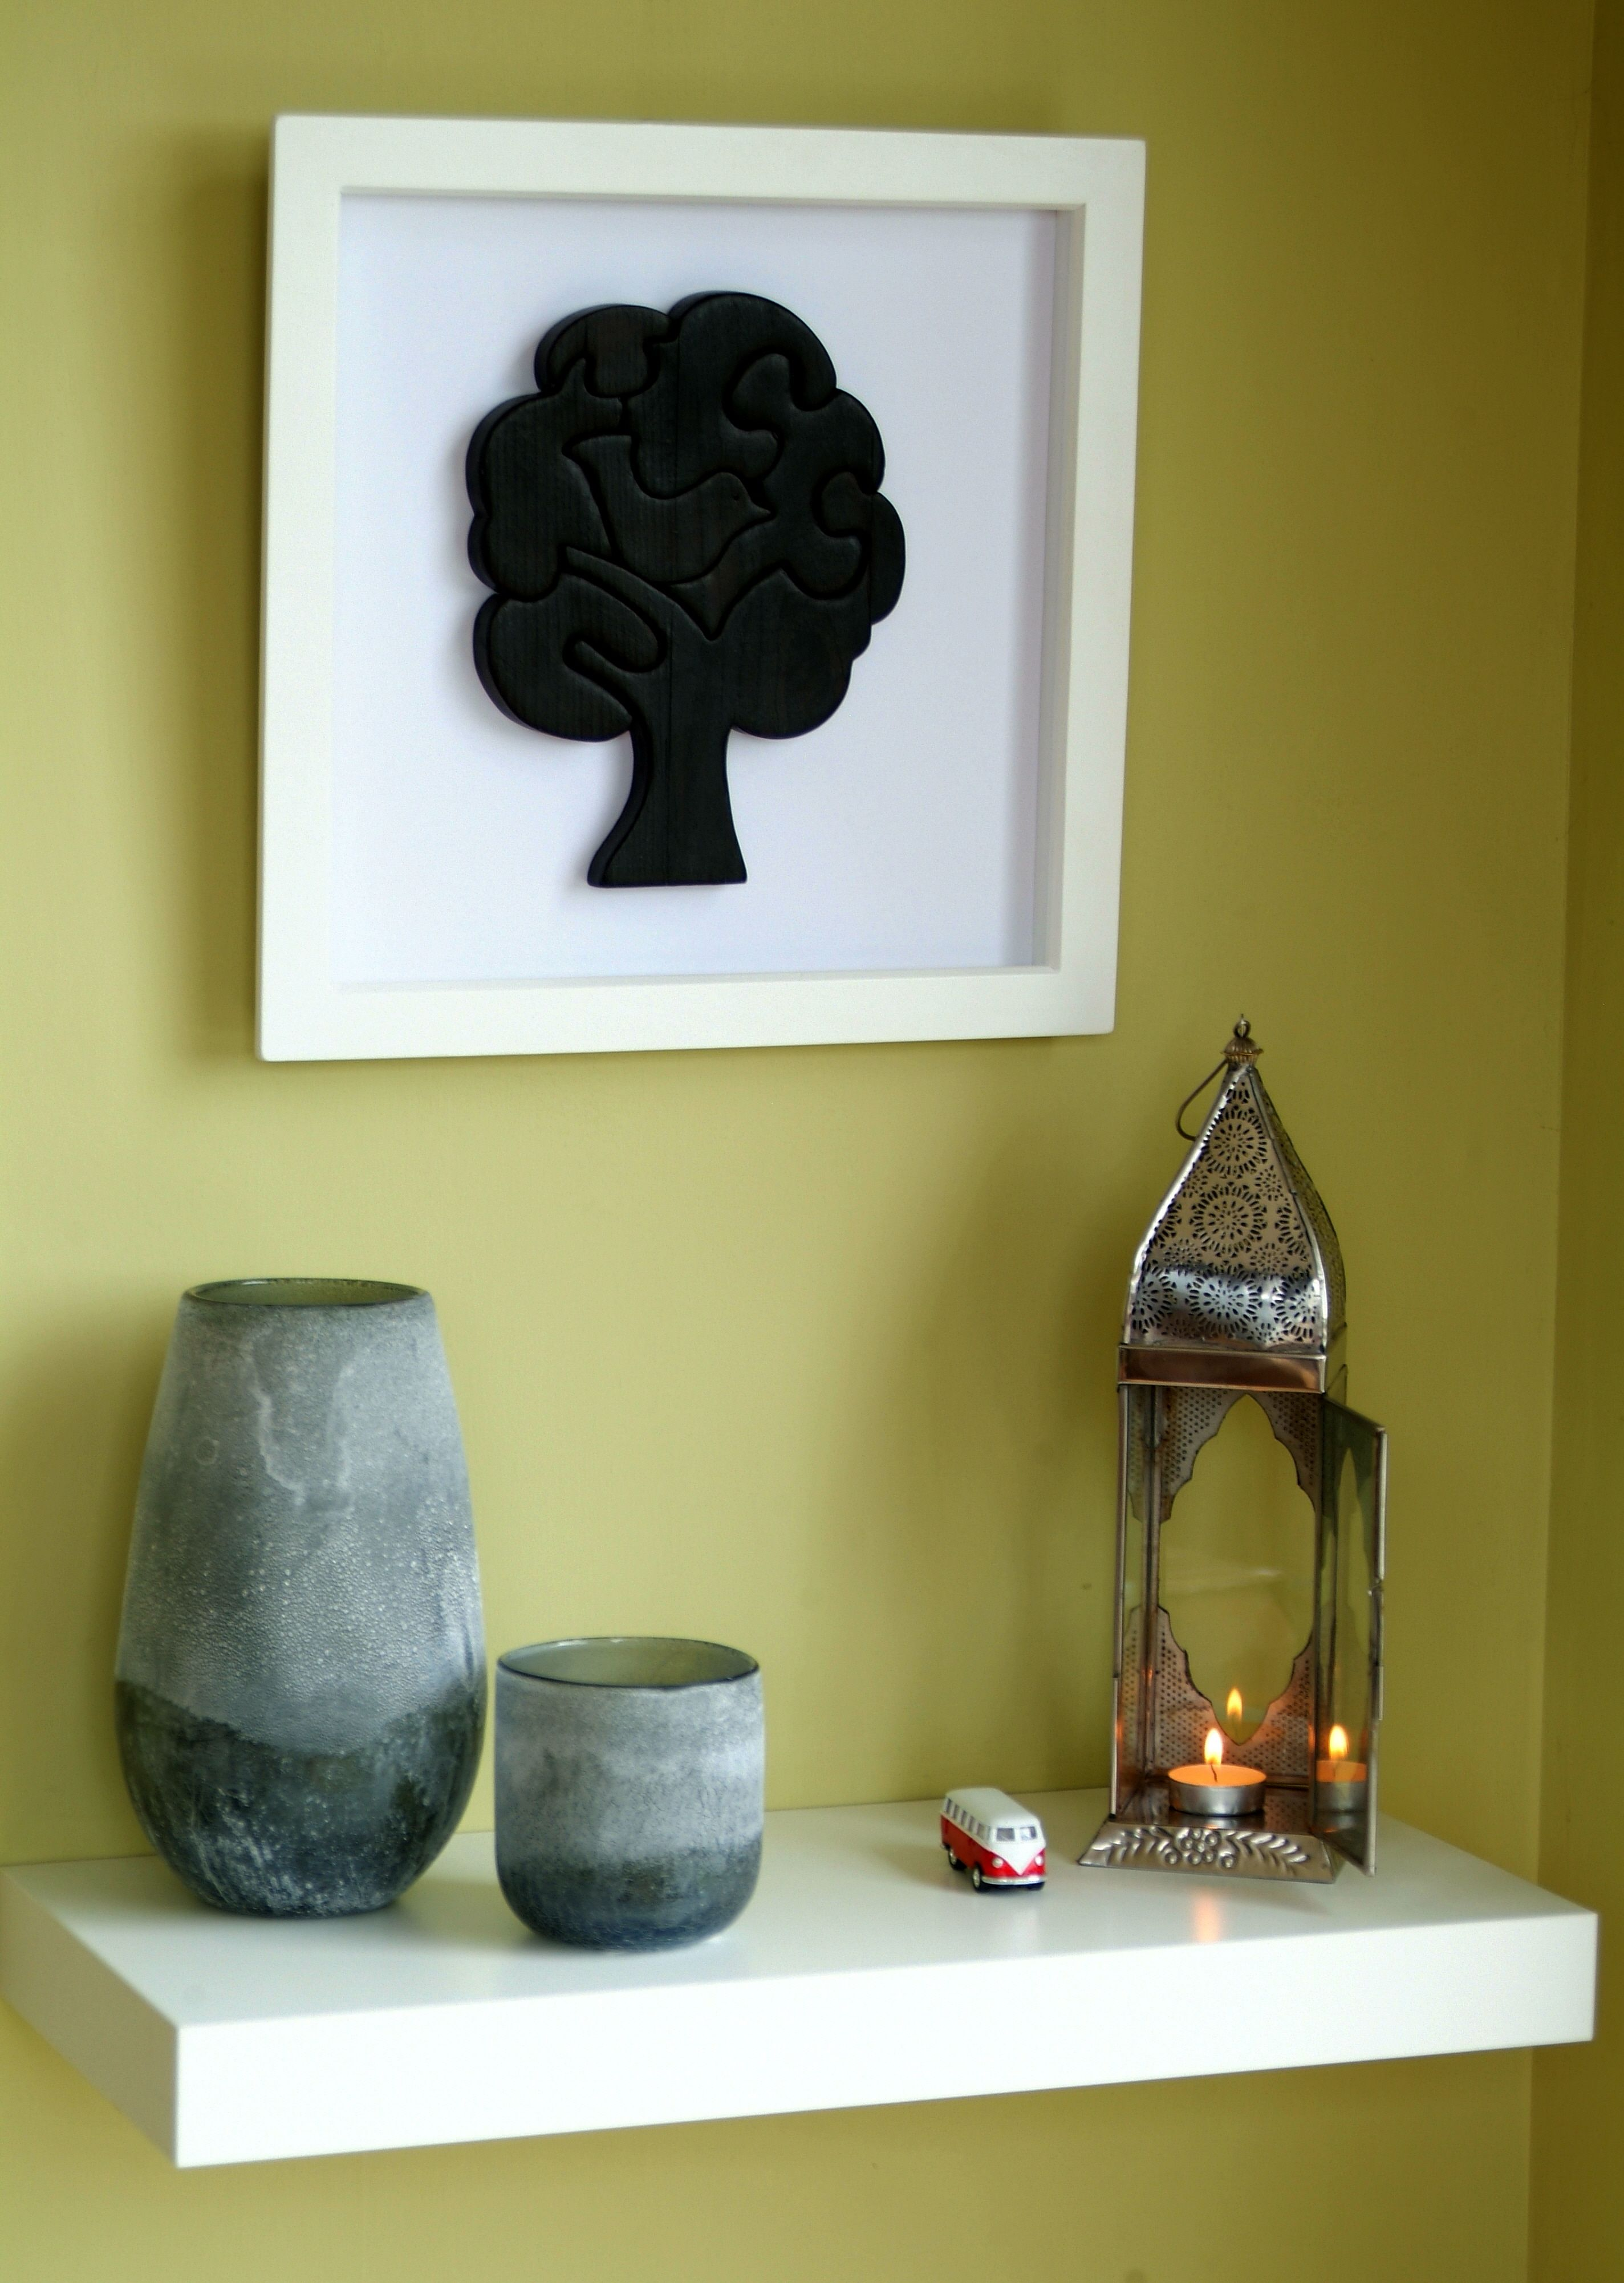 We've been burning stuff again! The wooden tree in the frame has had the scorch treatment!